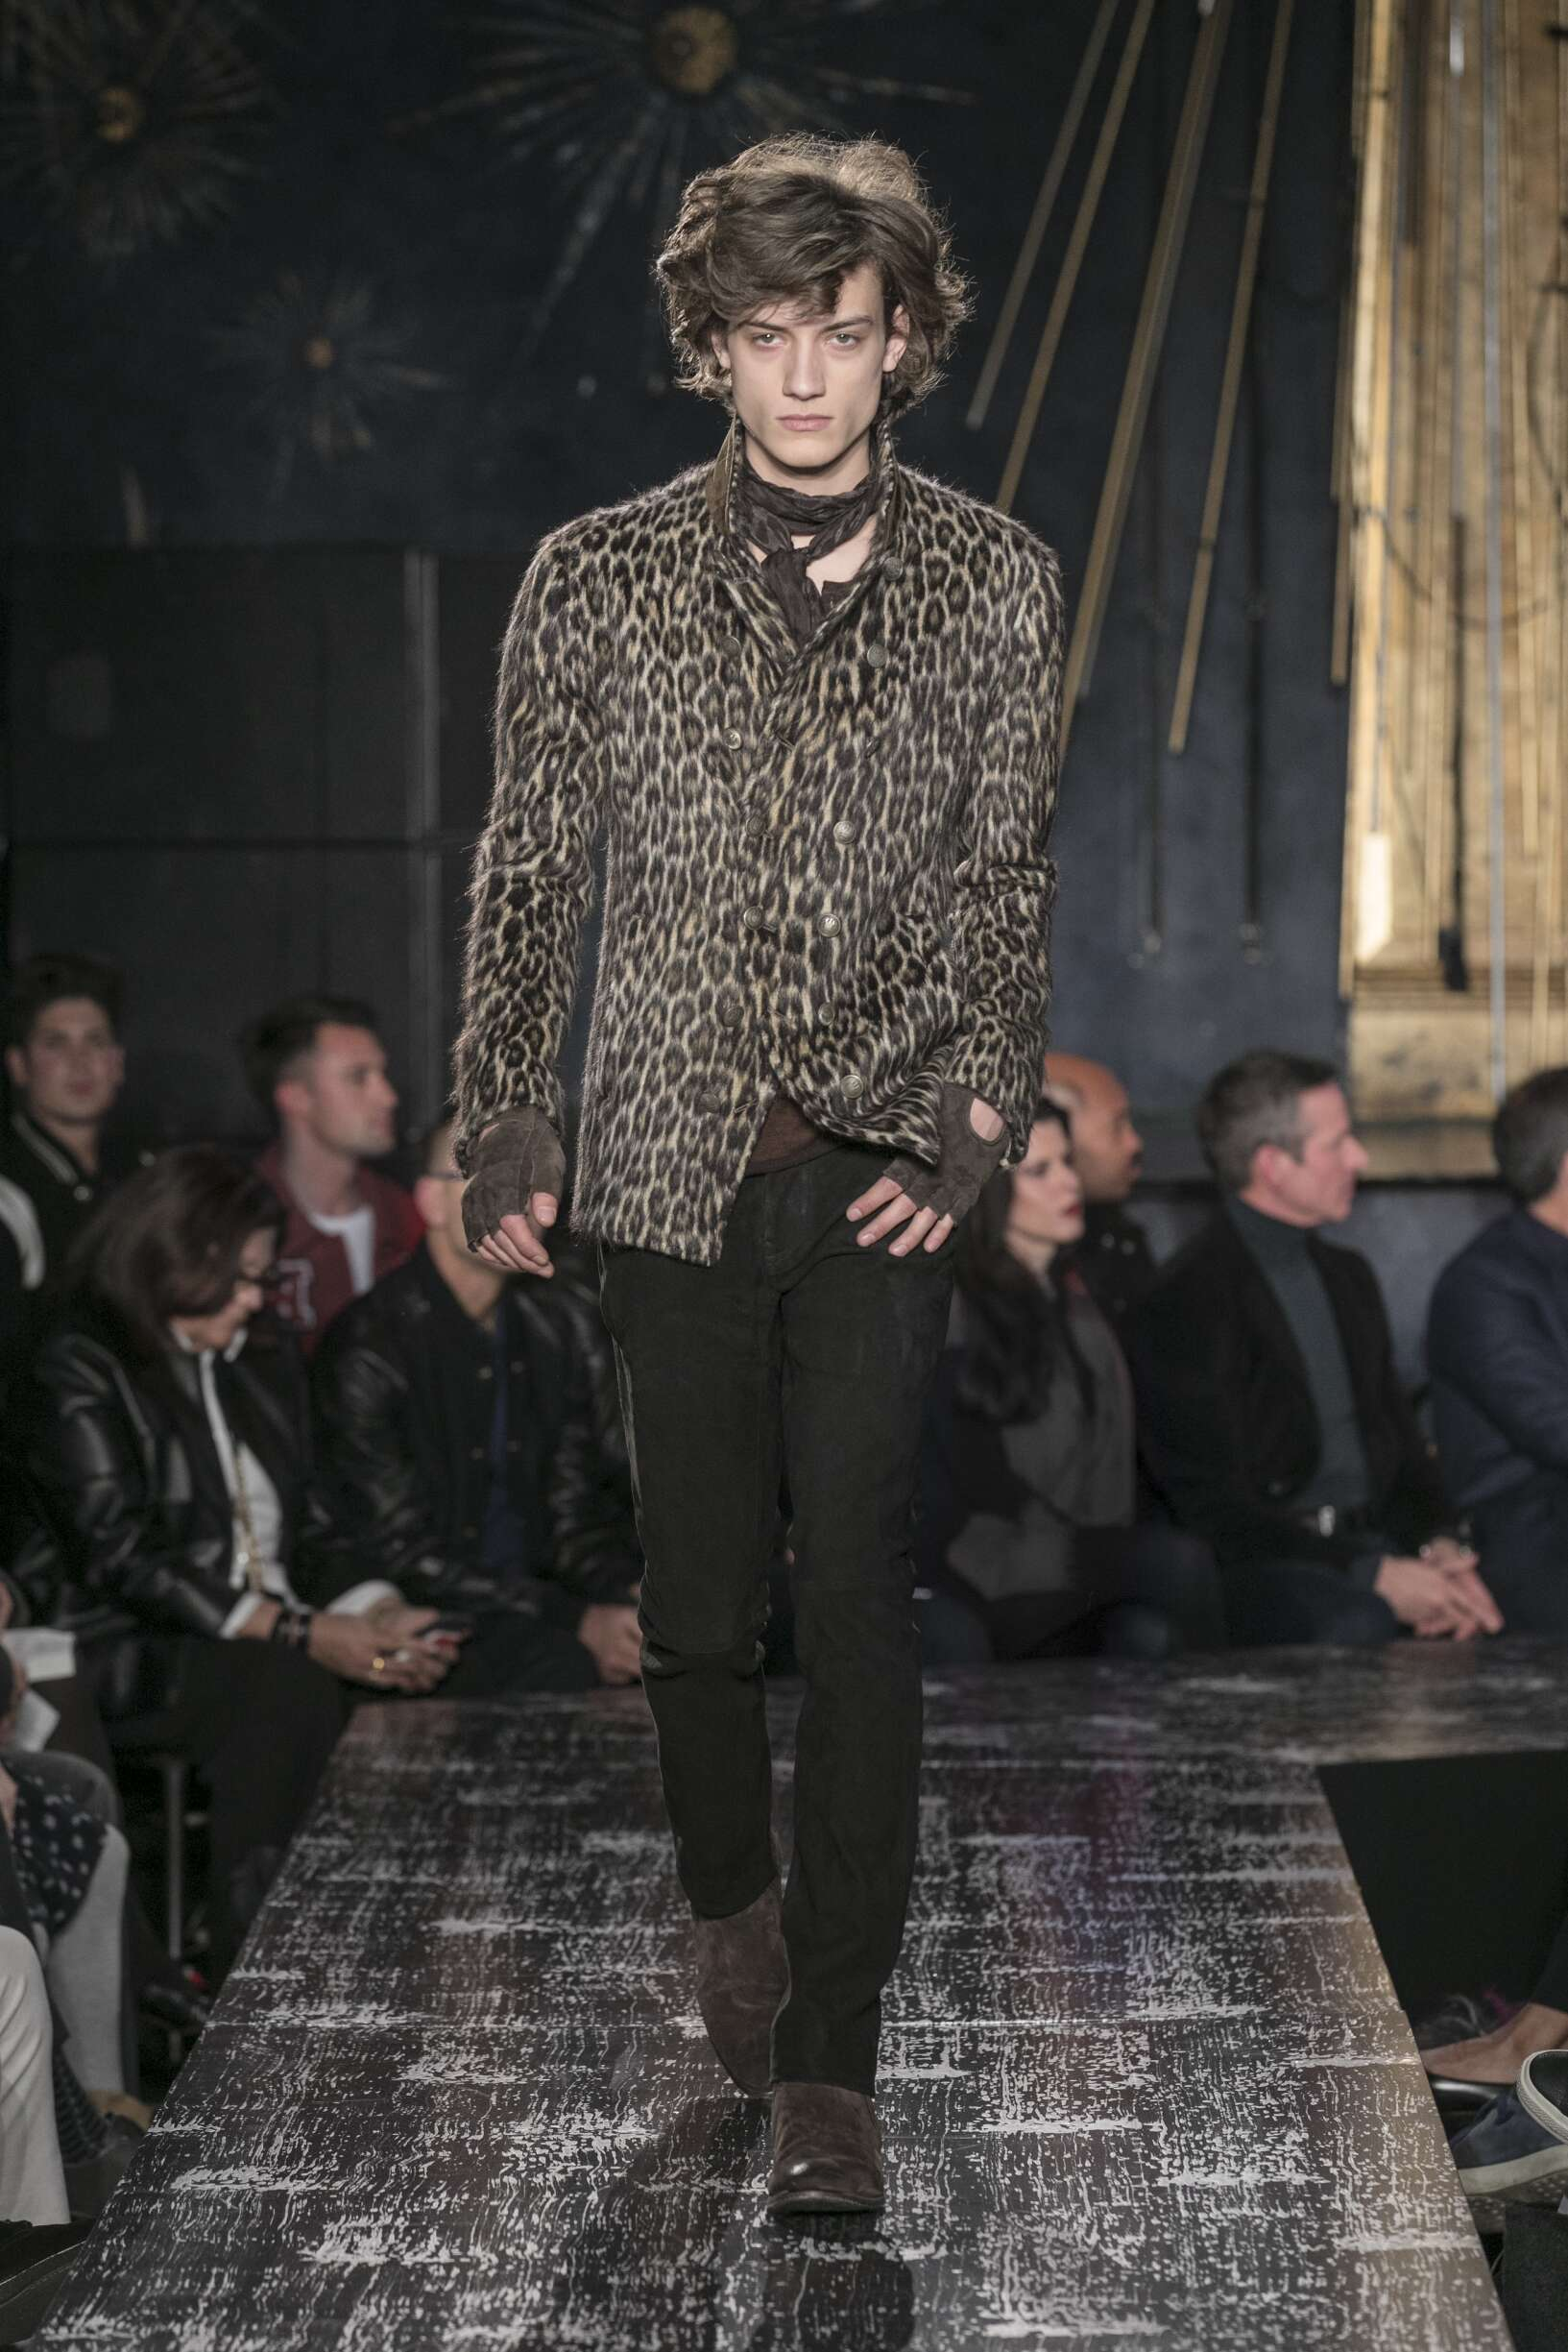 2017 Man John Varvatos Winter Catwalk